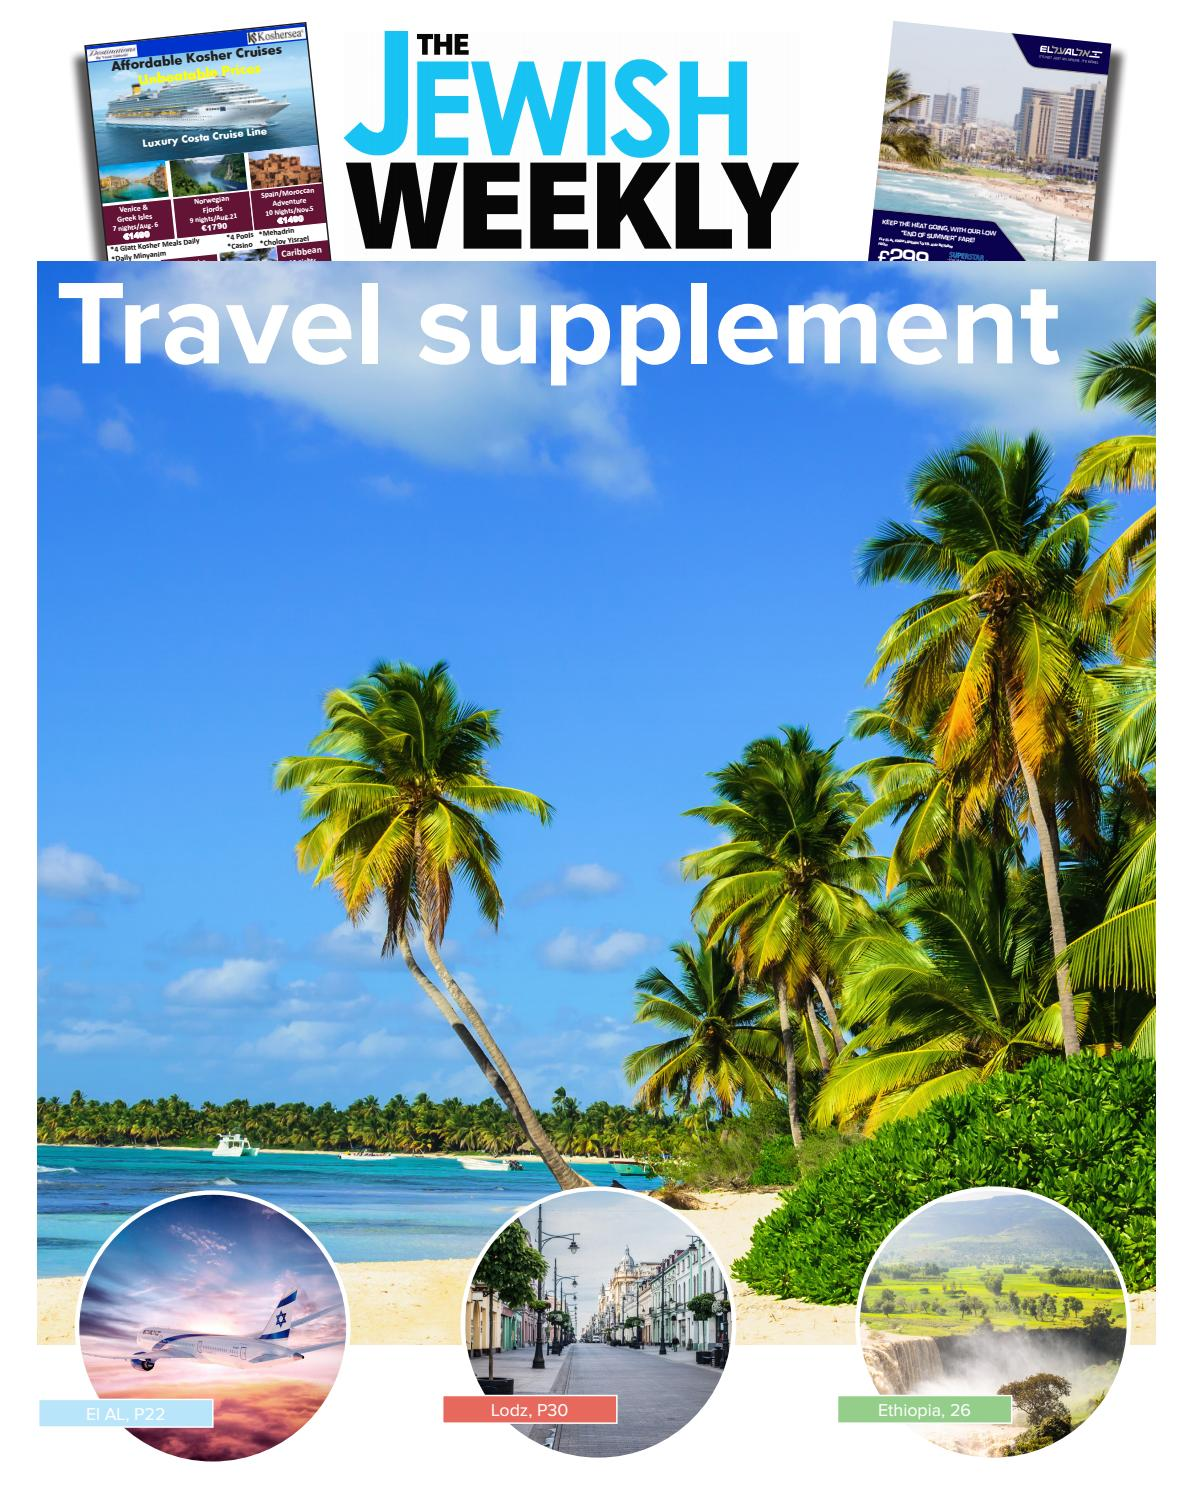 Jewish weekily final travel by The Jewish Weekly - issuu